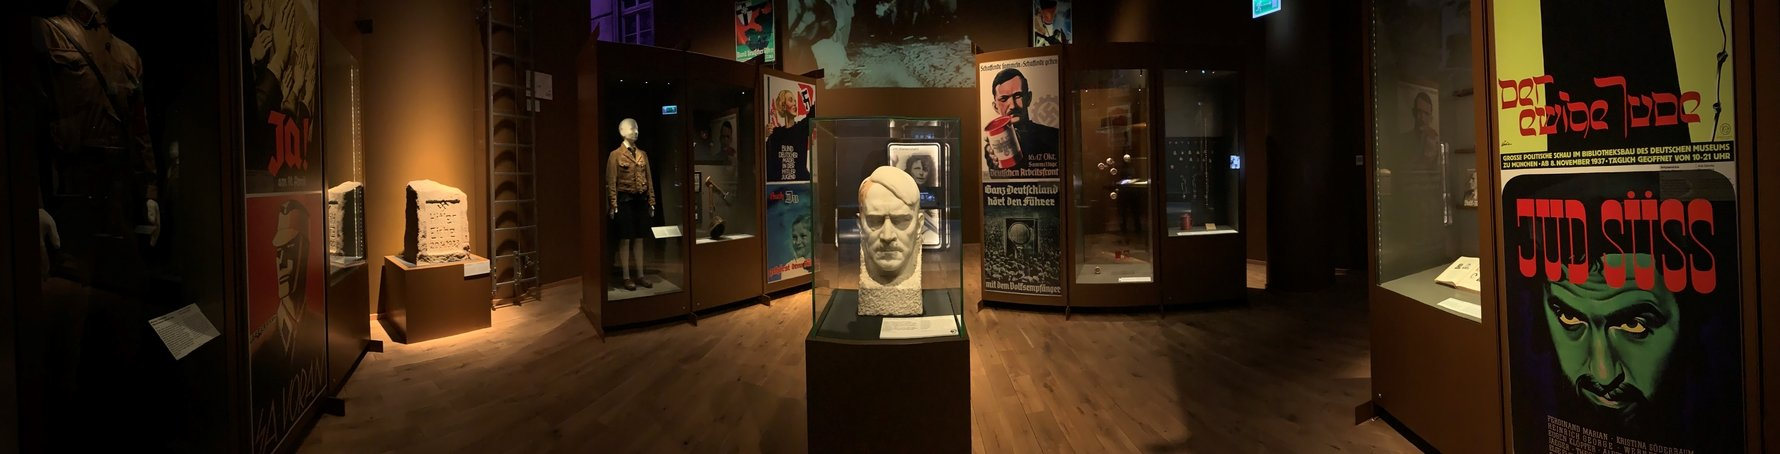 WWII Museum - Nazism and Anti-Semitism